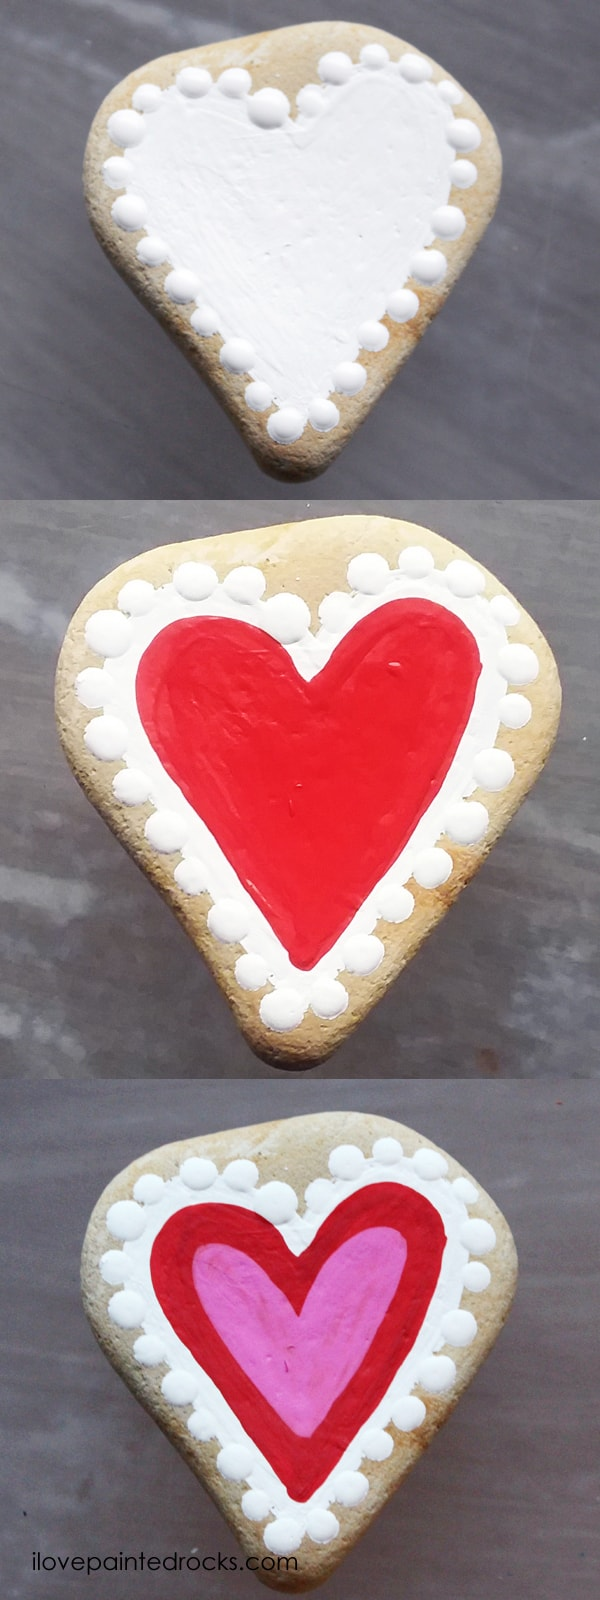 Easy rock painting ideas for Valentine's Day. I love all the painted rock tutorials in this post! Learn how to paint a doily inspired heart rock. #ilovepaintedrocks #rockpainting #paintedrocks #valentinescraft #easycraft #kidscraft #rockpaintingideas